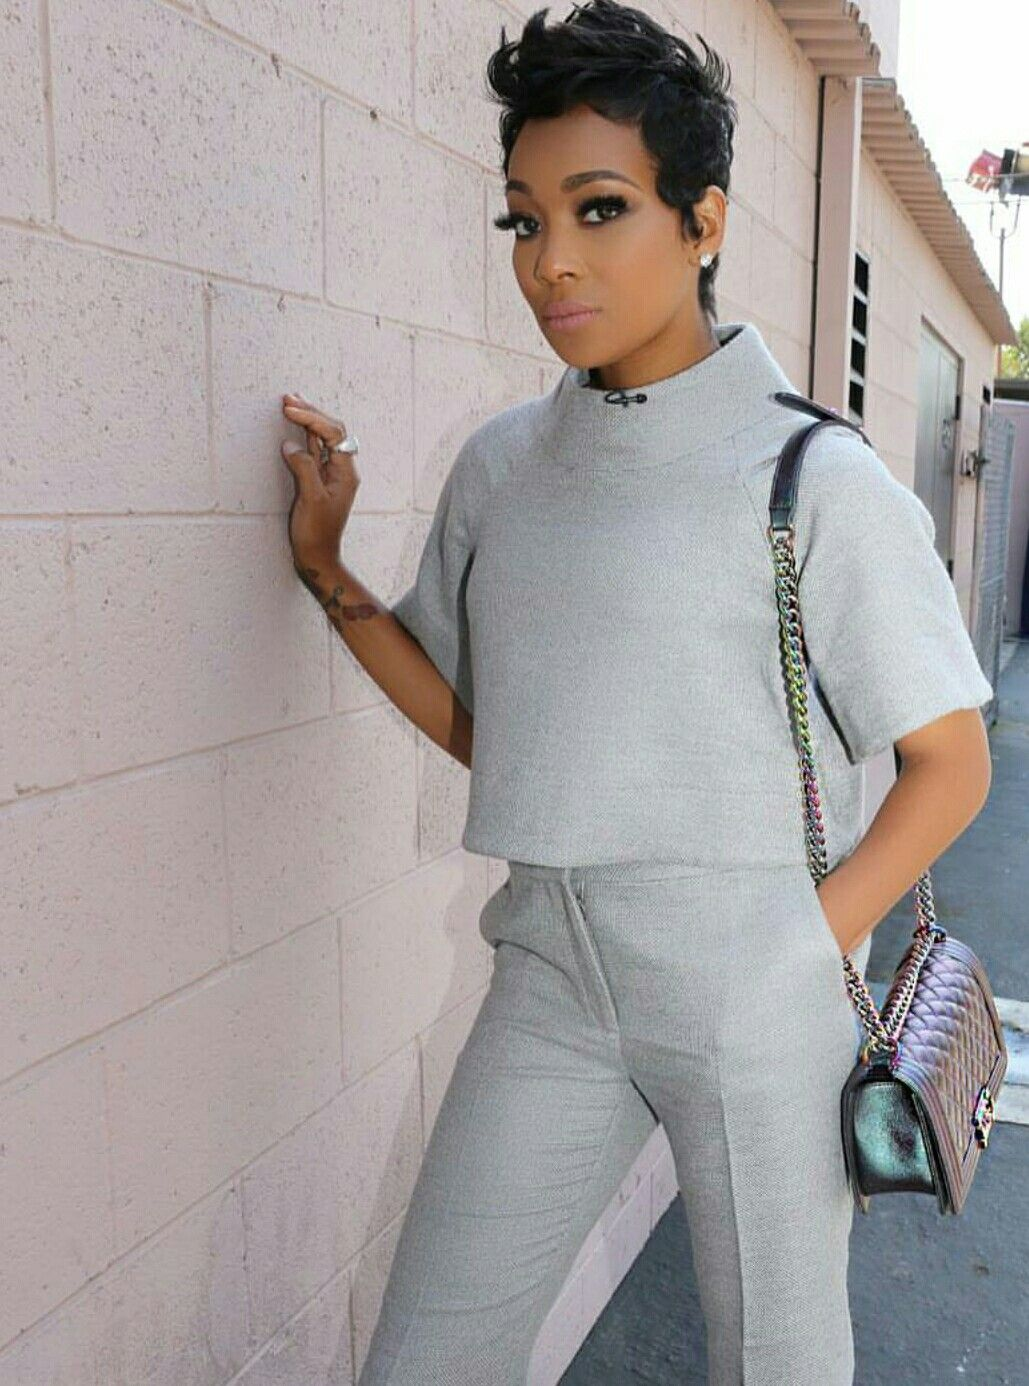 monica brown celebrity short